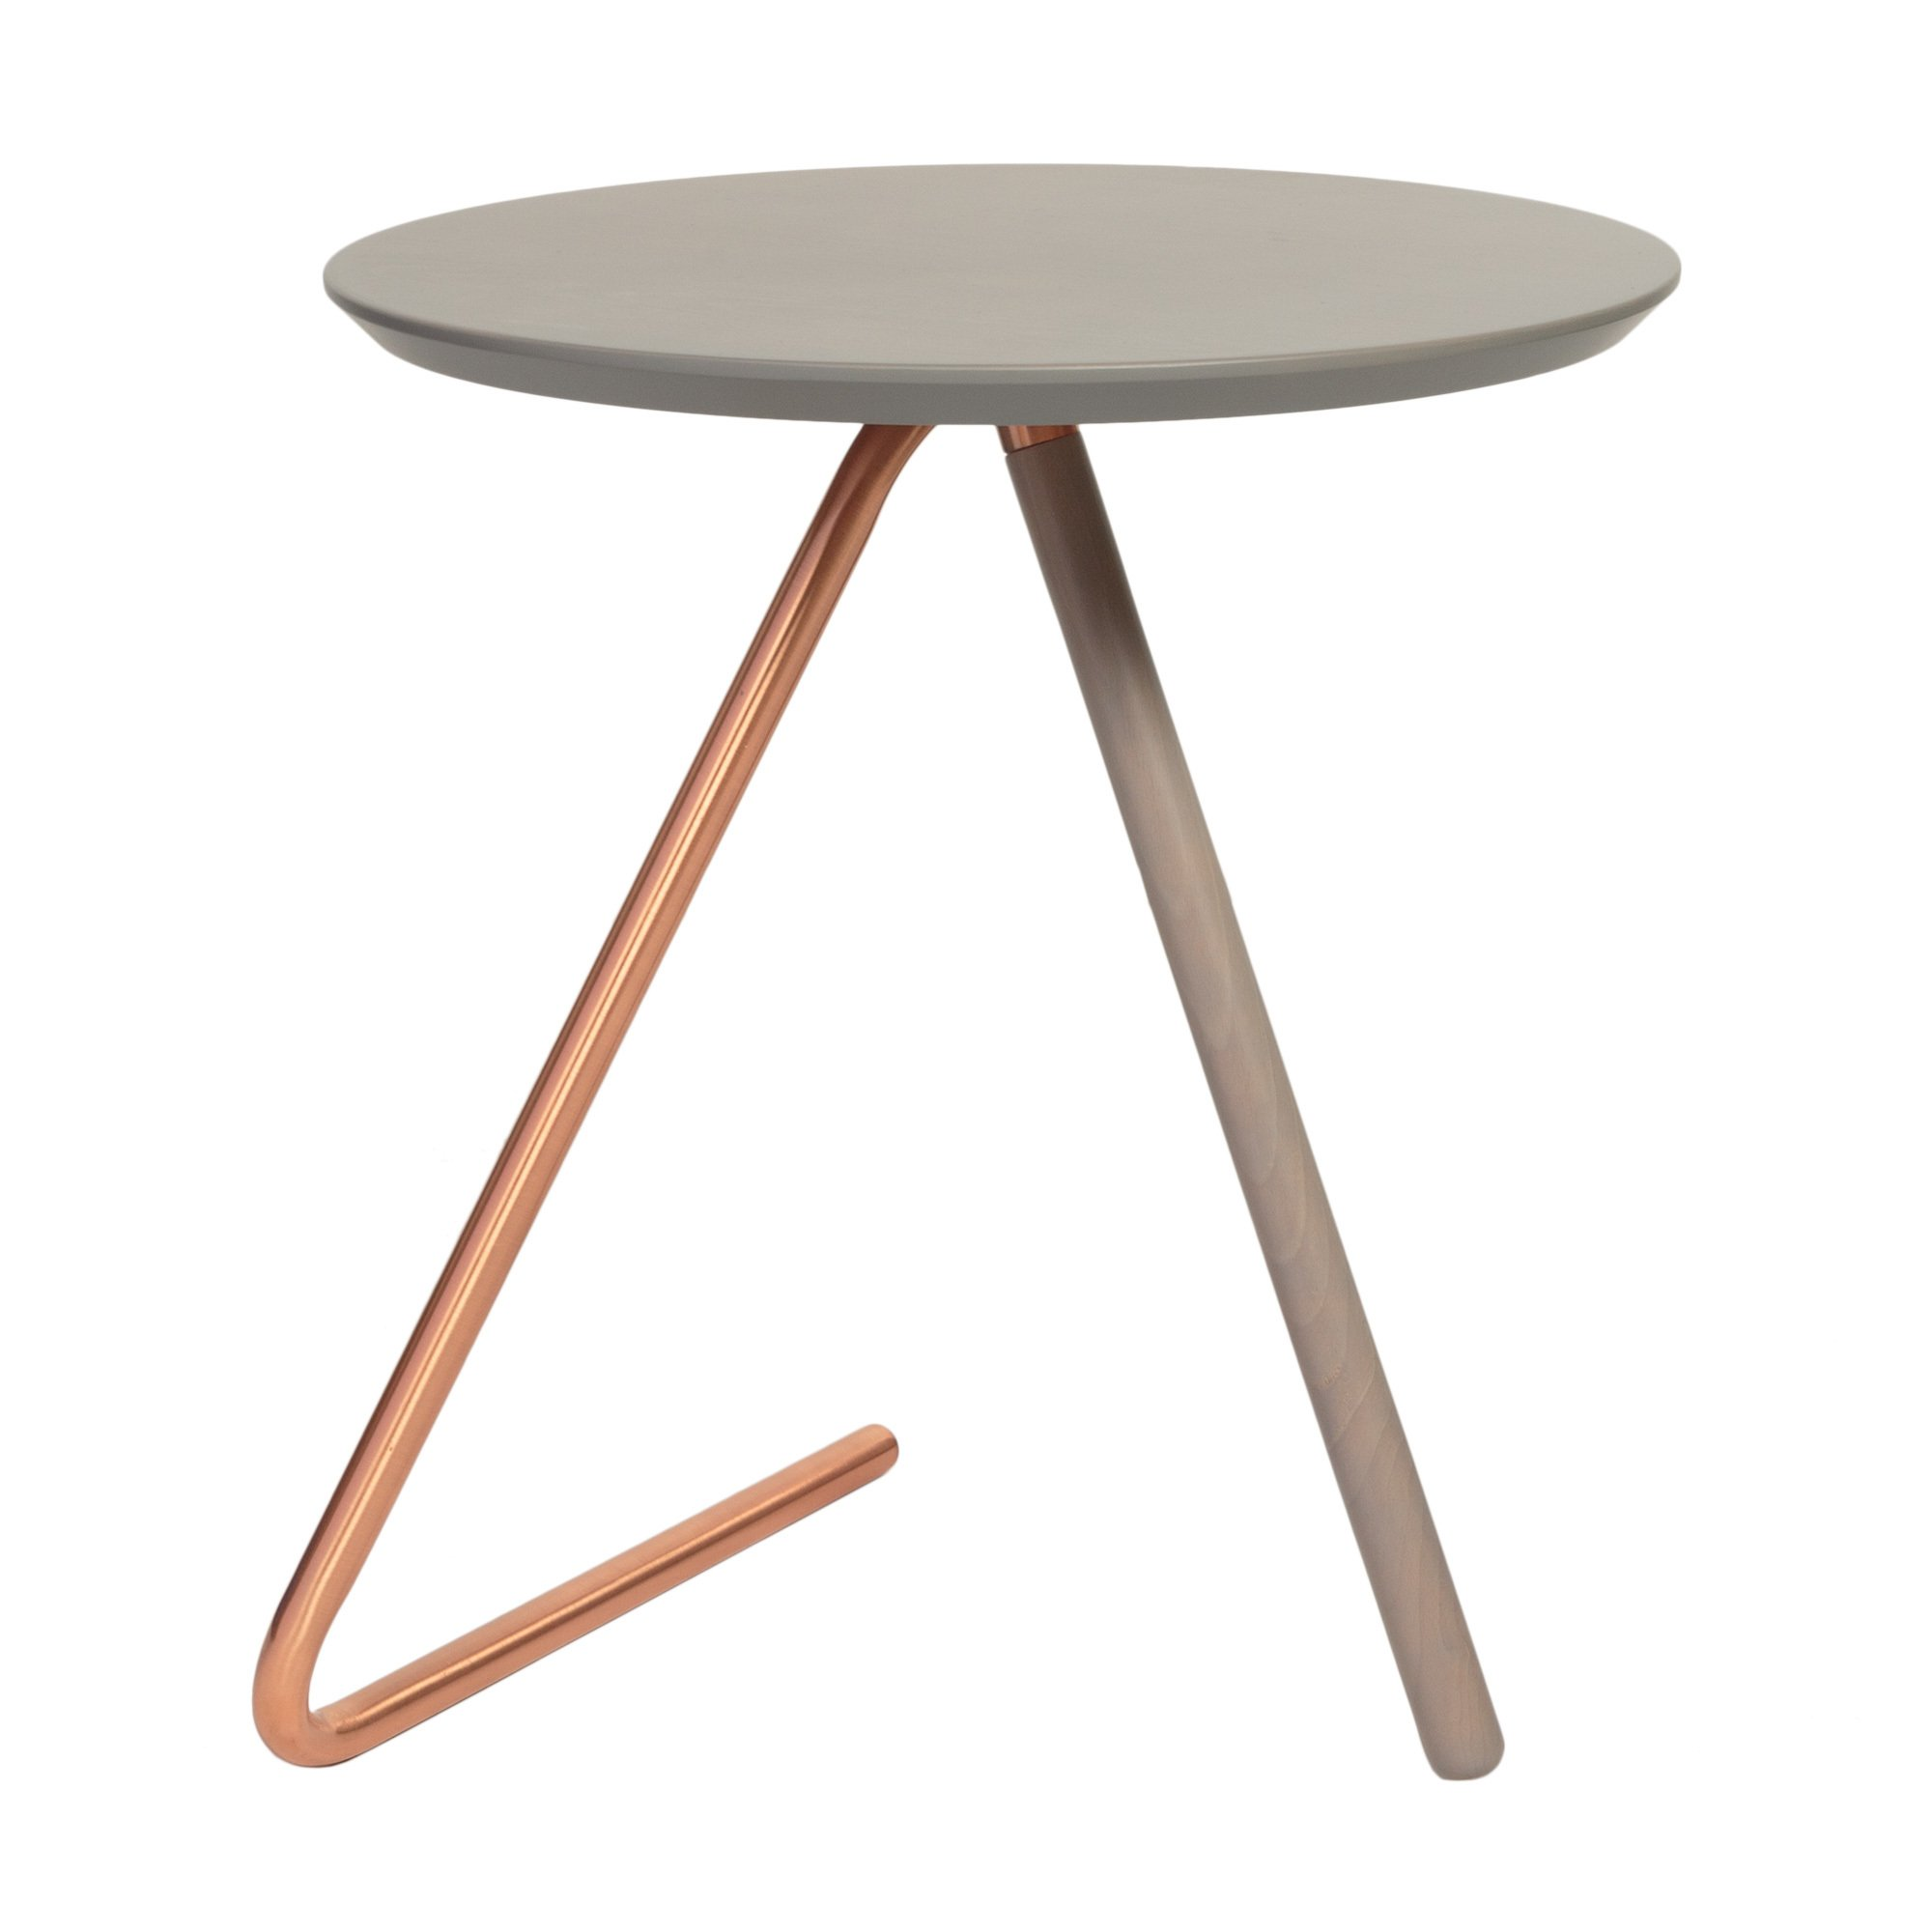 Less than three grey and copper side table oliver bonas for Table y copper